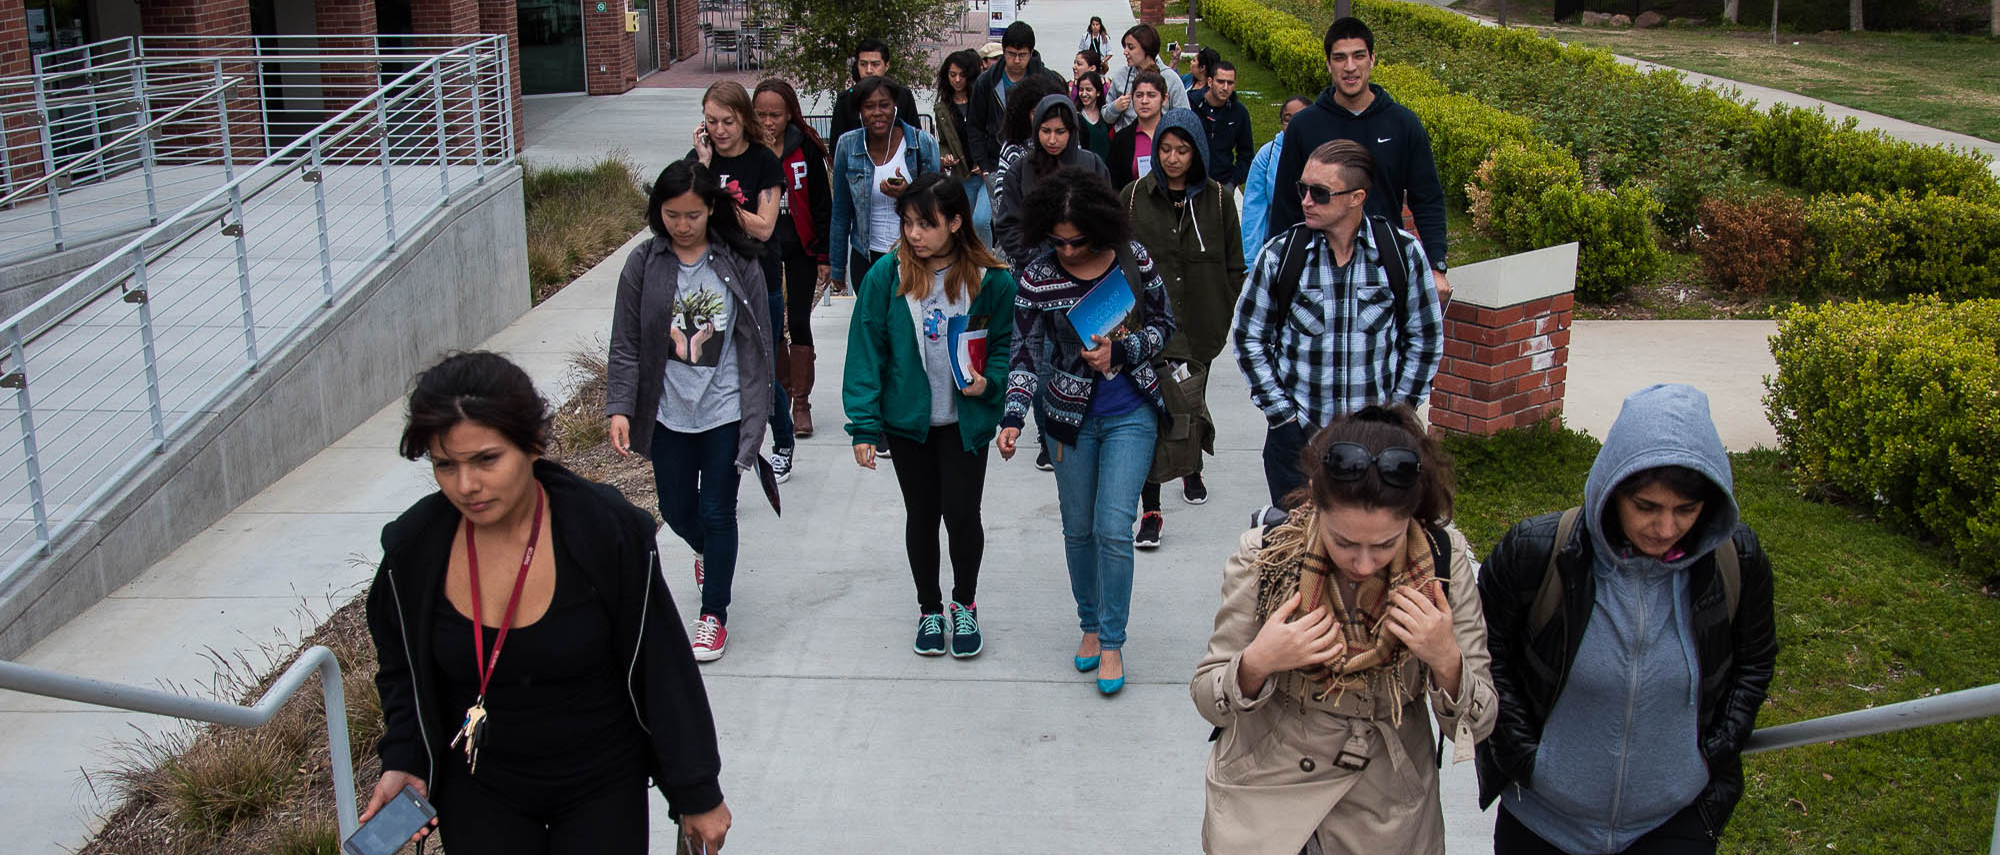 Students visit campuses on Coastal College Tour